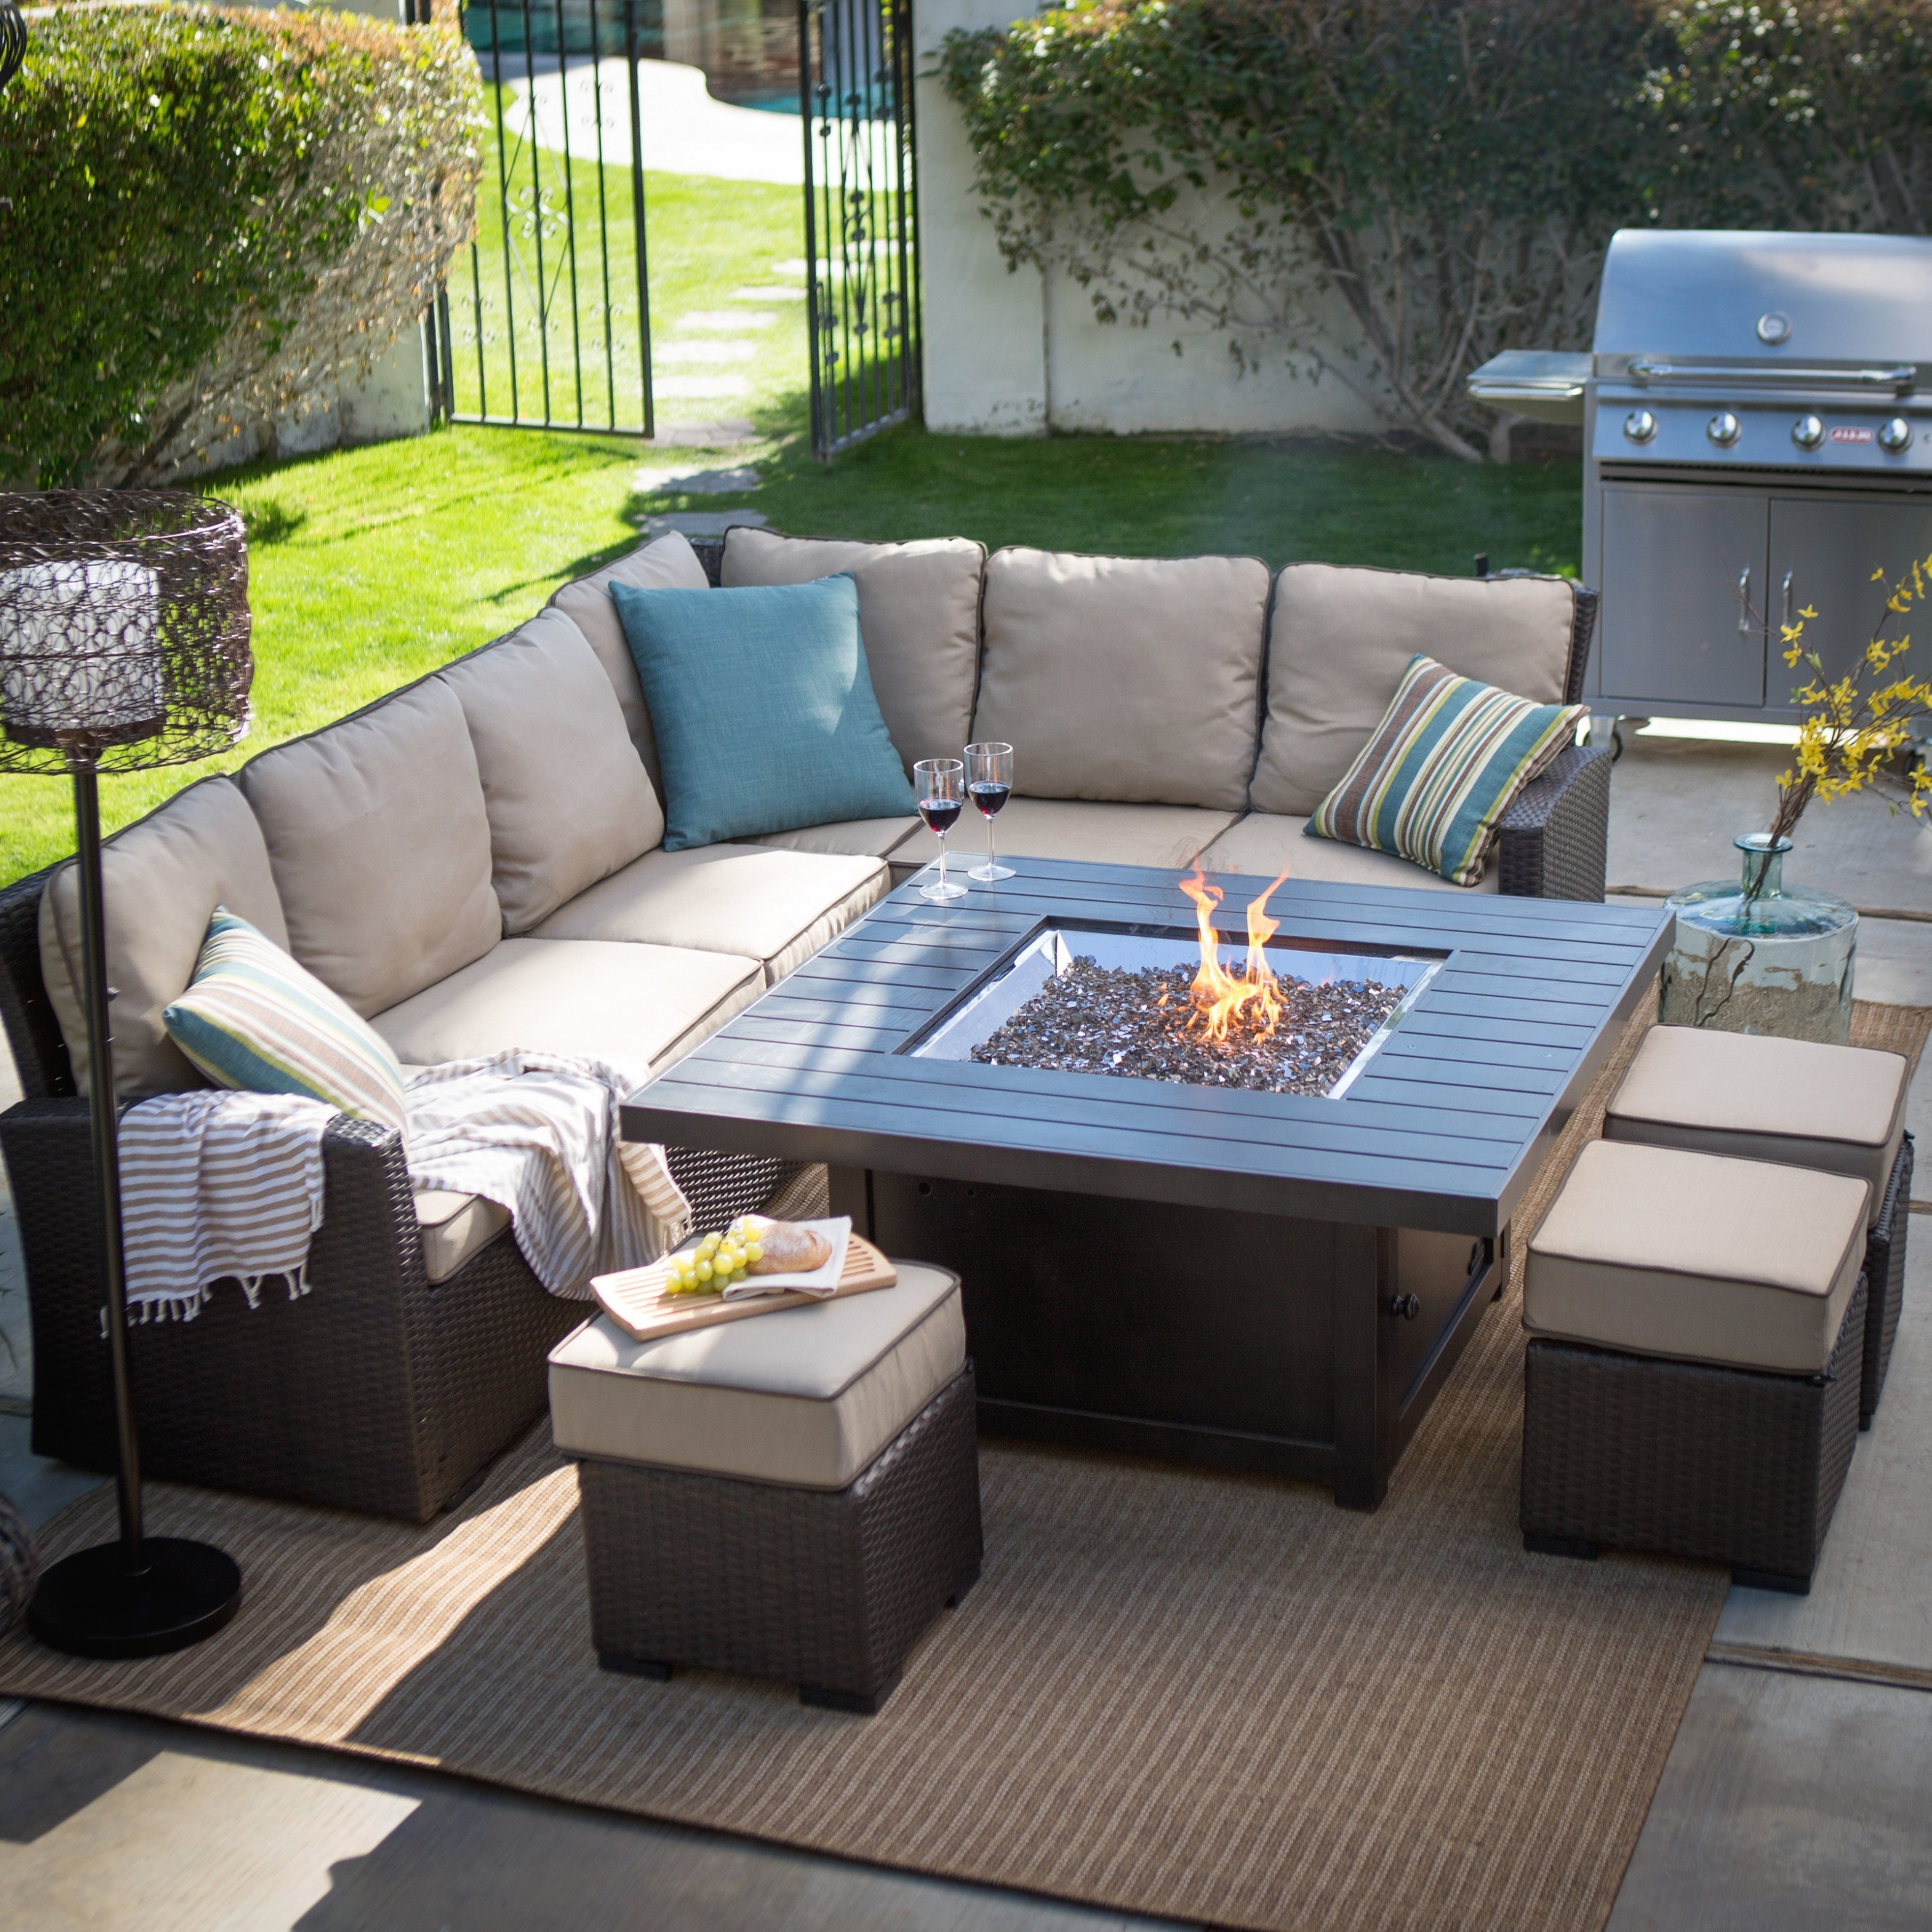 Patio Conversation Sets With Propane Fire Pit Inside Most Recent Colossal Patio Furniture Sets With Fire Pit Porch Chairs Table Cheap (View 6 of 15)